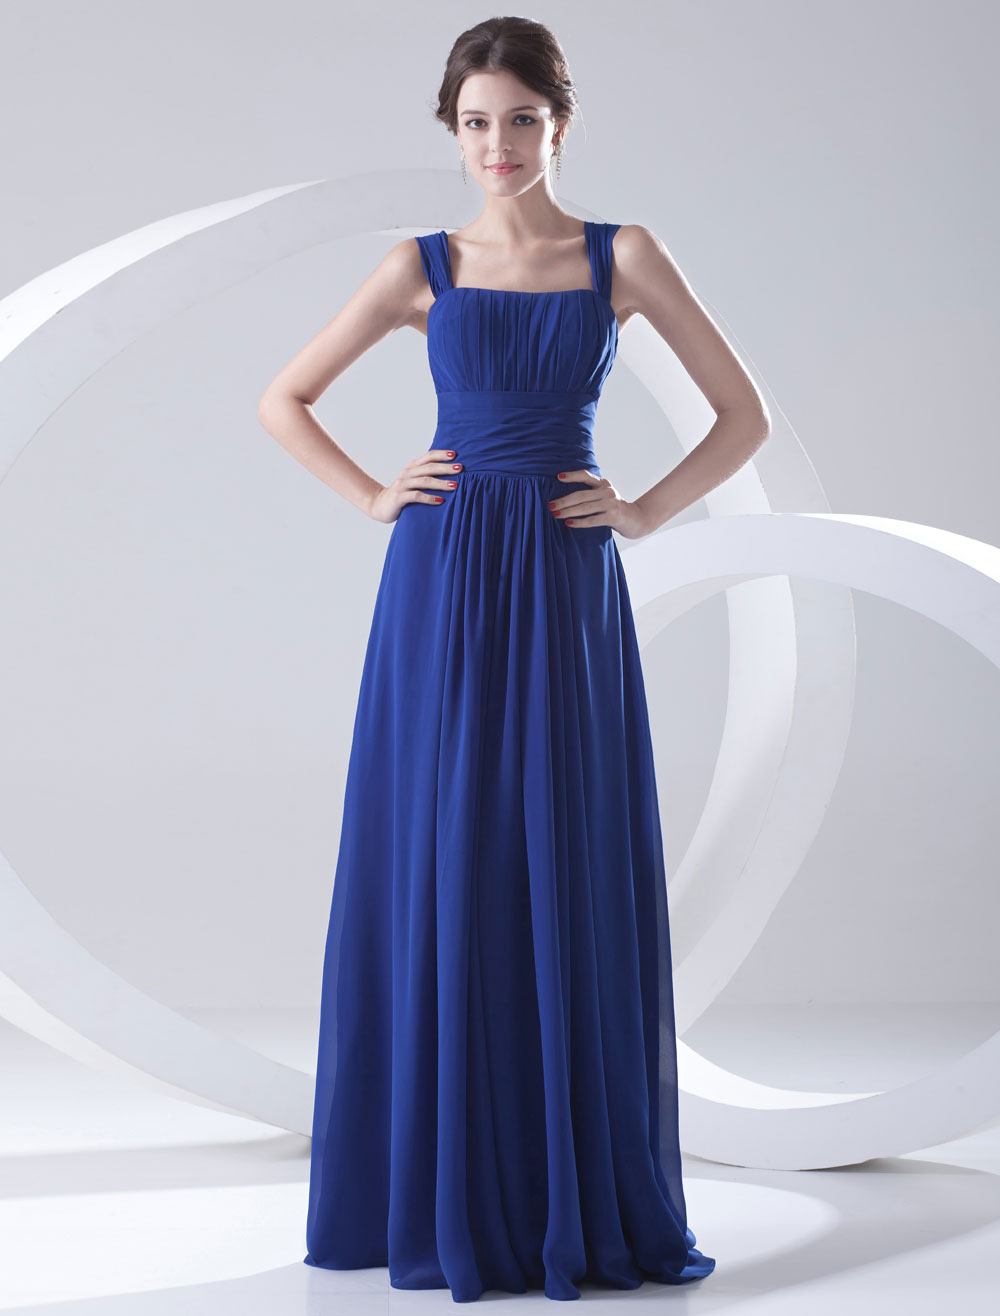 High Waist Royal Blue Chiffon Square Neck Fashion Bridesmaid Dress